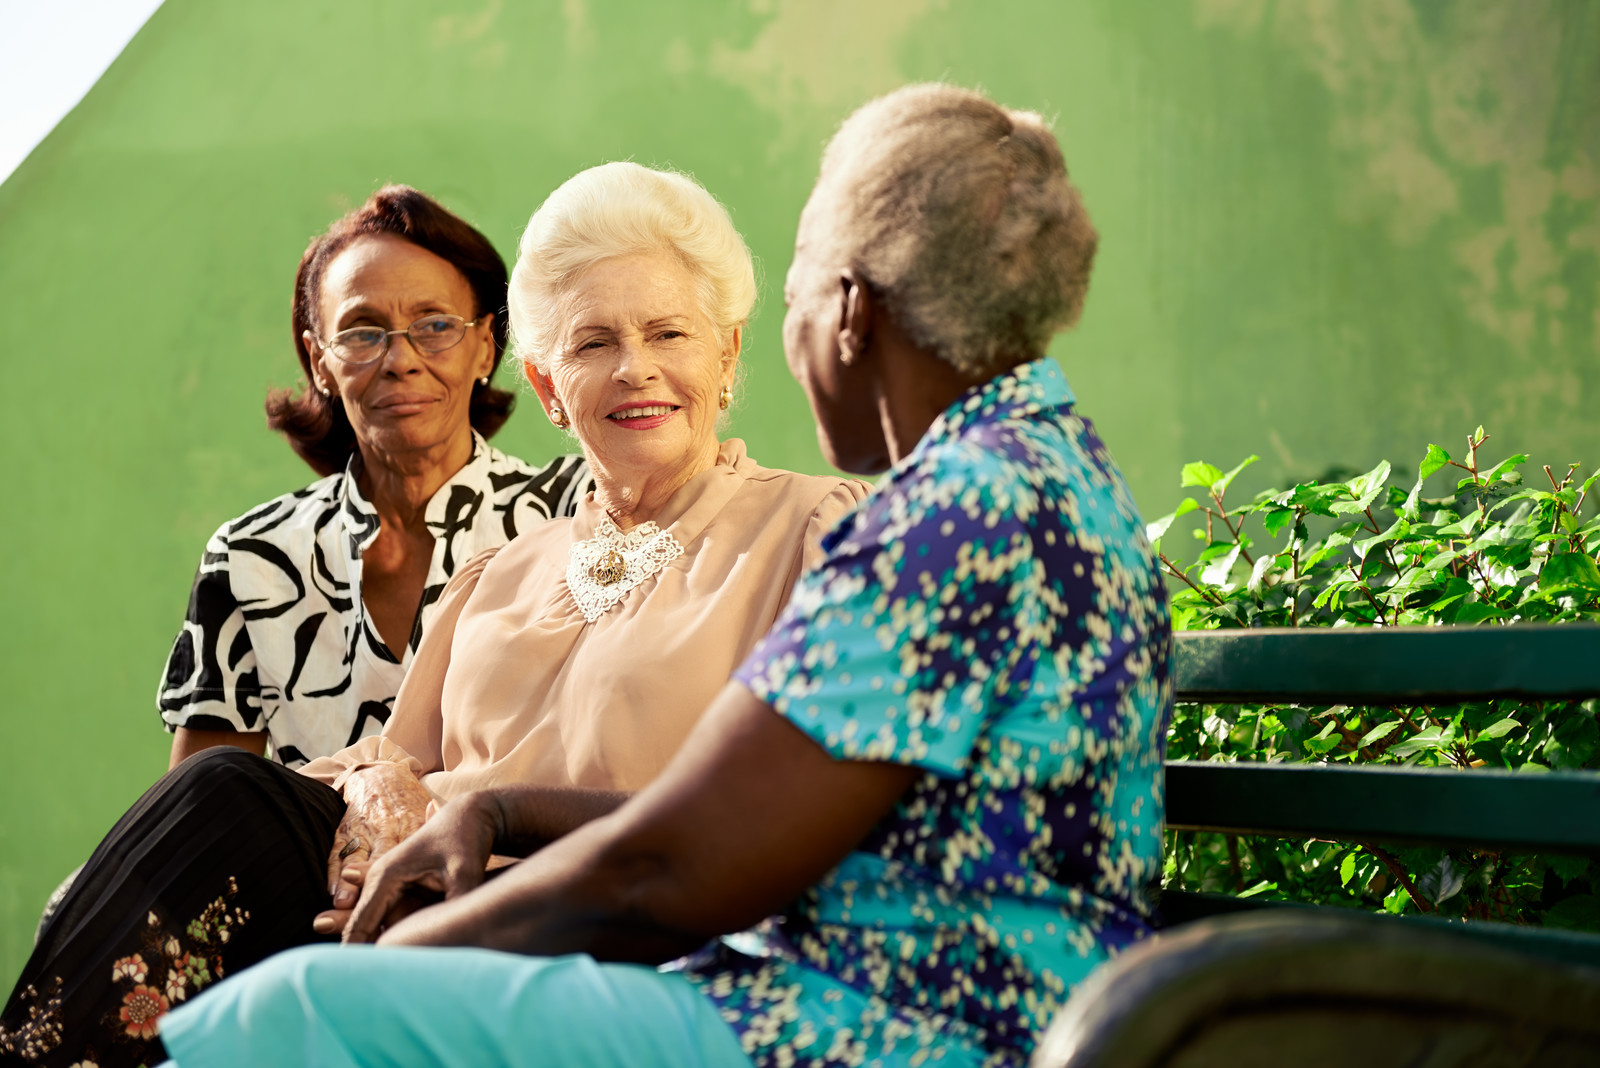 Three senior women on a park bench, green background and shrub behind the bench.  The three women appear to be in conversation